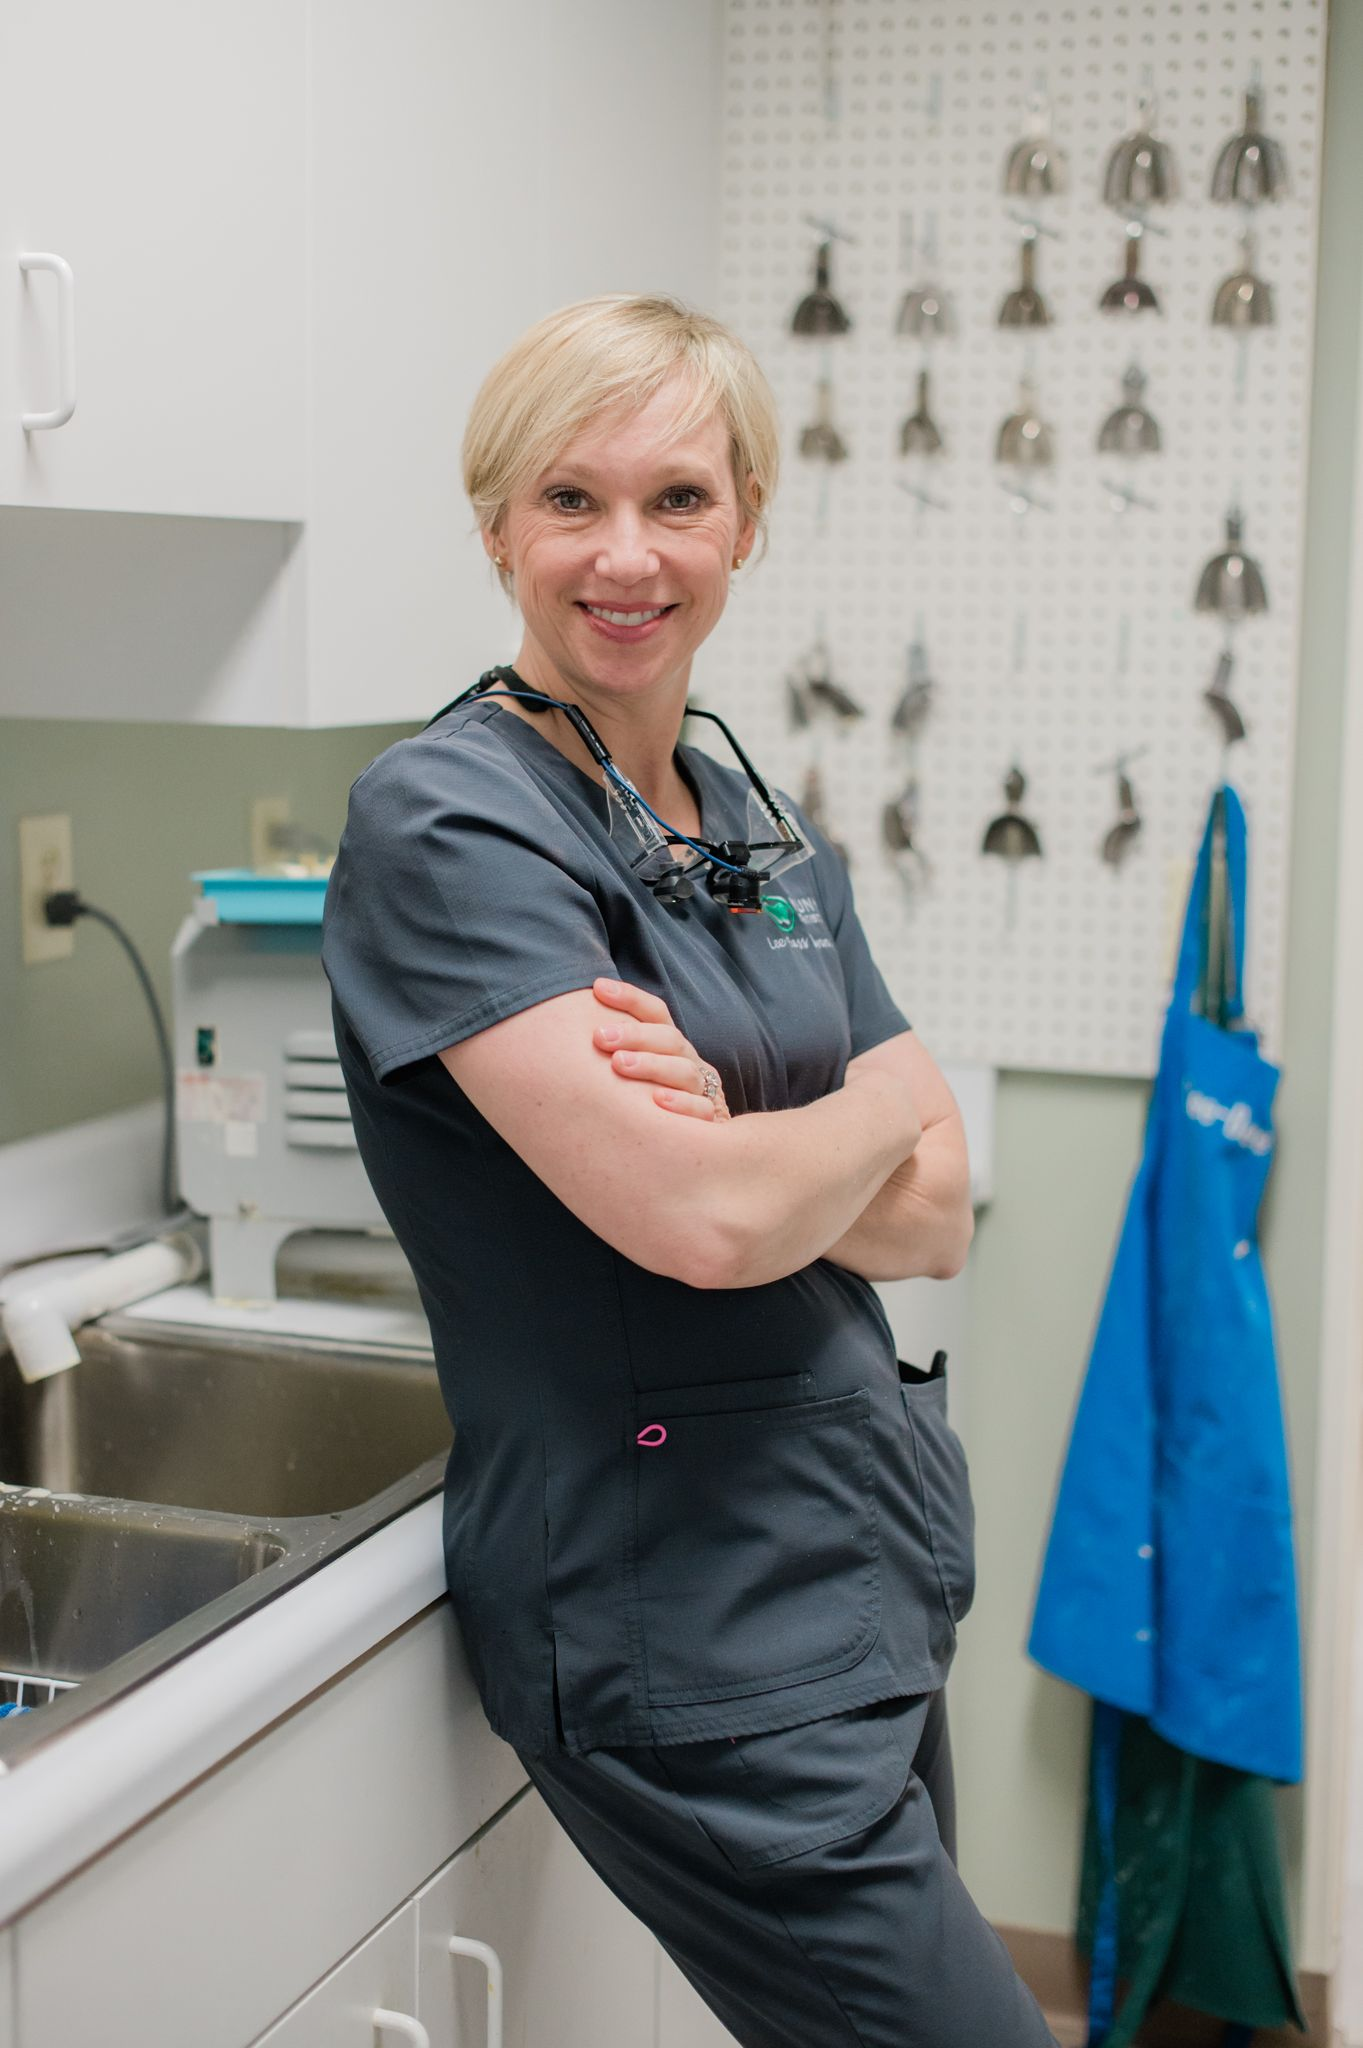 Dr. Lee Bass Nunn, dentist at Nunn Dentistry in High Point, NC wears scrubs and leans on the counter in her office.